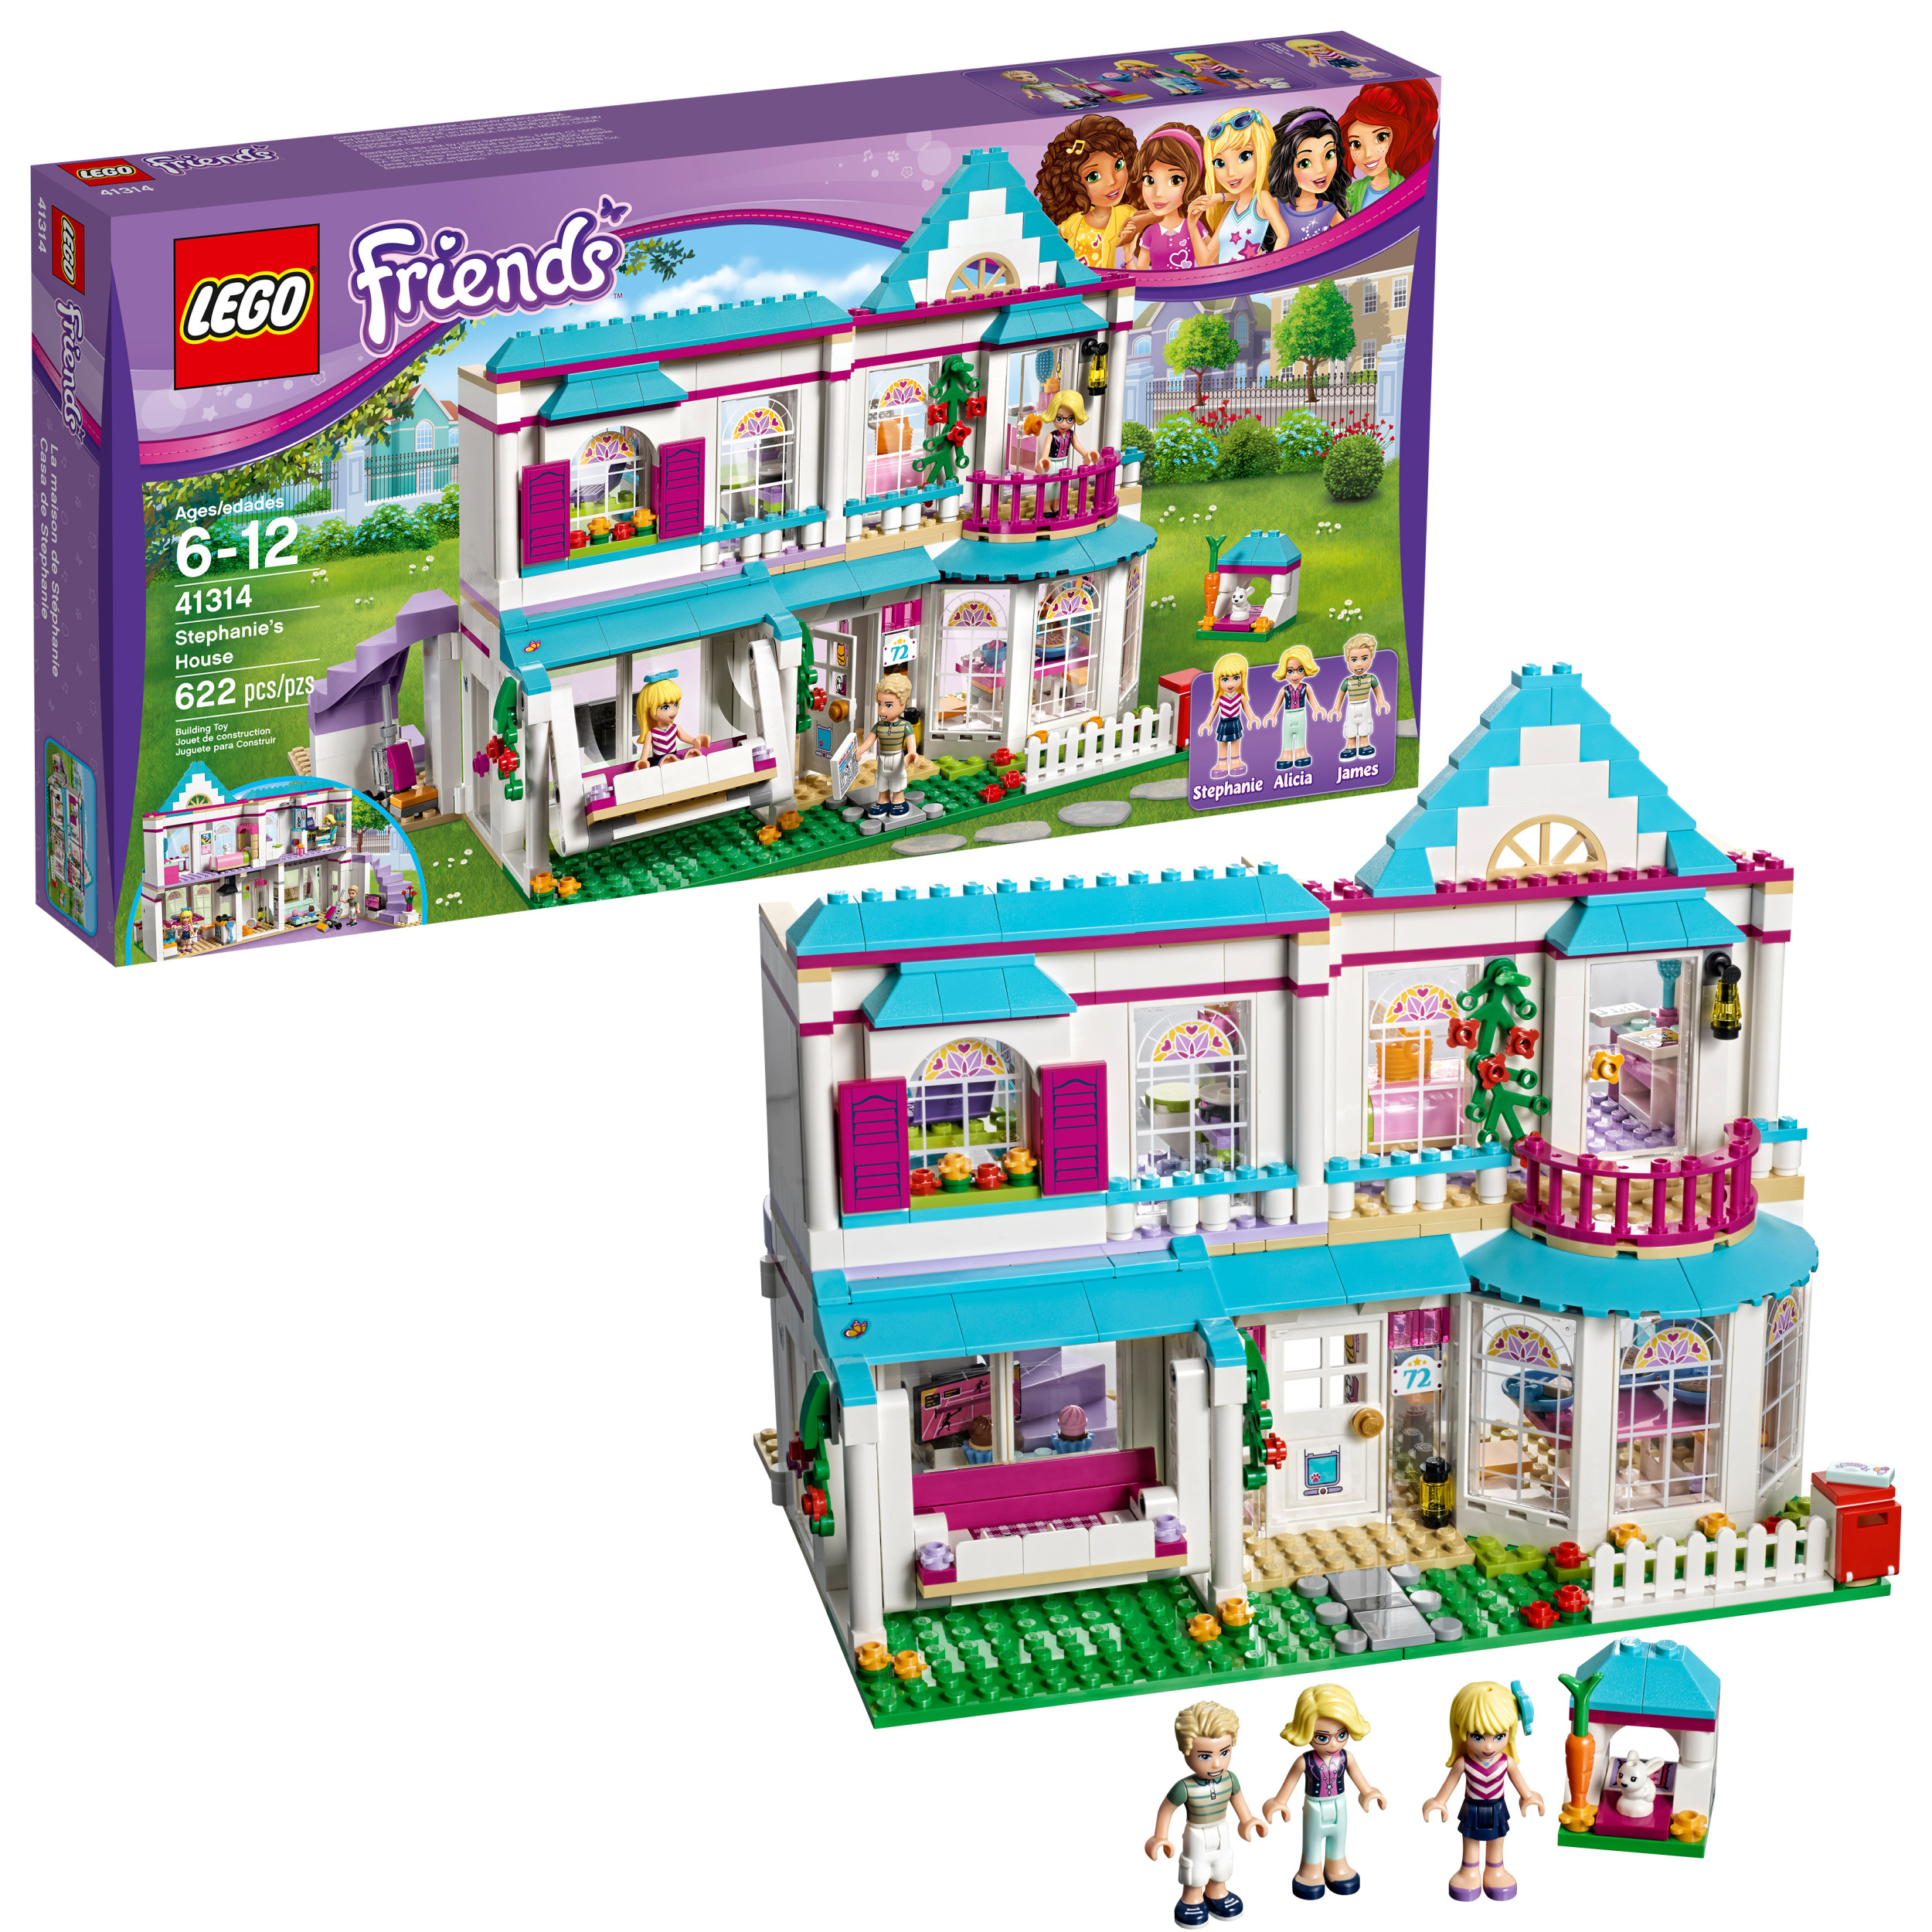 LEGO LEGO Friends Stephanie's House 41314